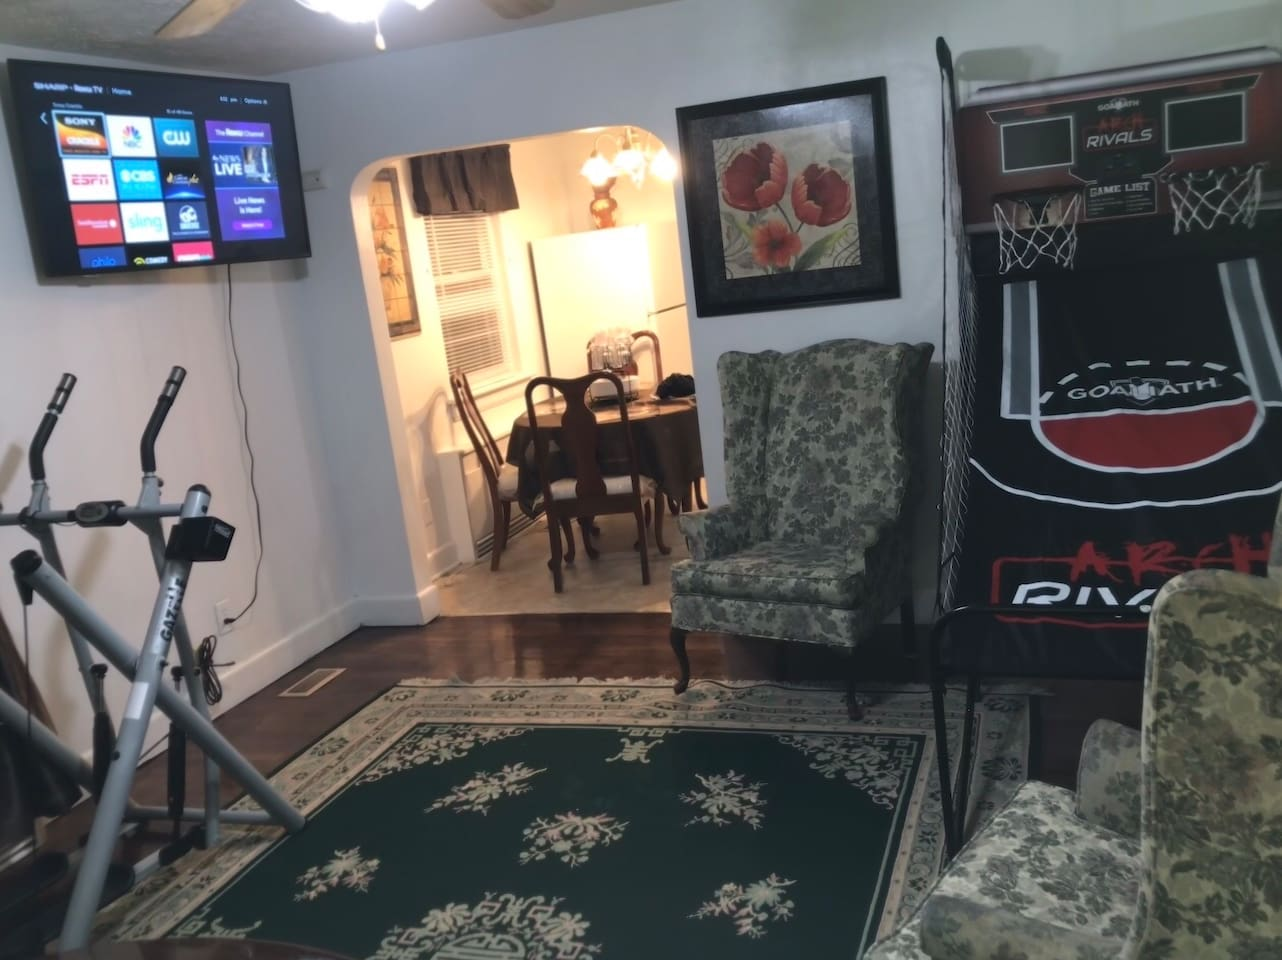 There's plenty to do Play single or multi player basketball on 8 ft. Electronic game  Put in  time working out on cross trainer.Enjoy a movie or show on 50 inch new ROKU tv Sit back relax and let google home mini entertain you just say hey google